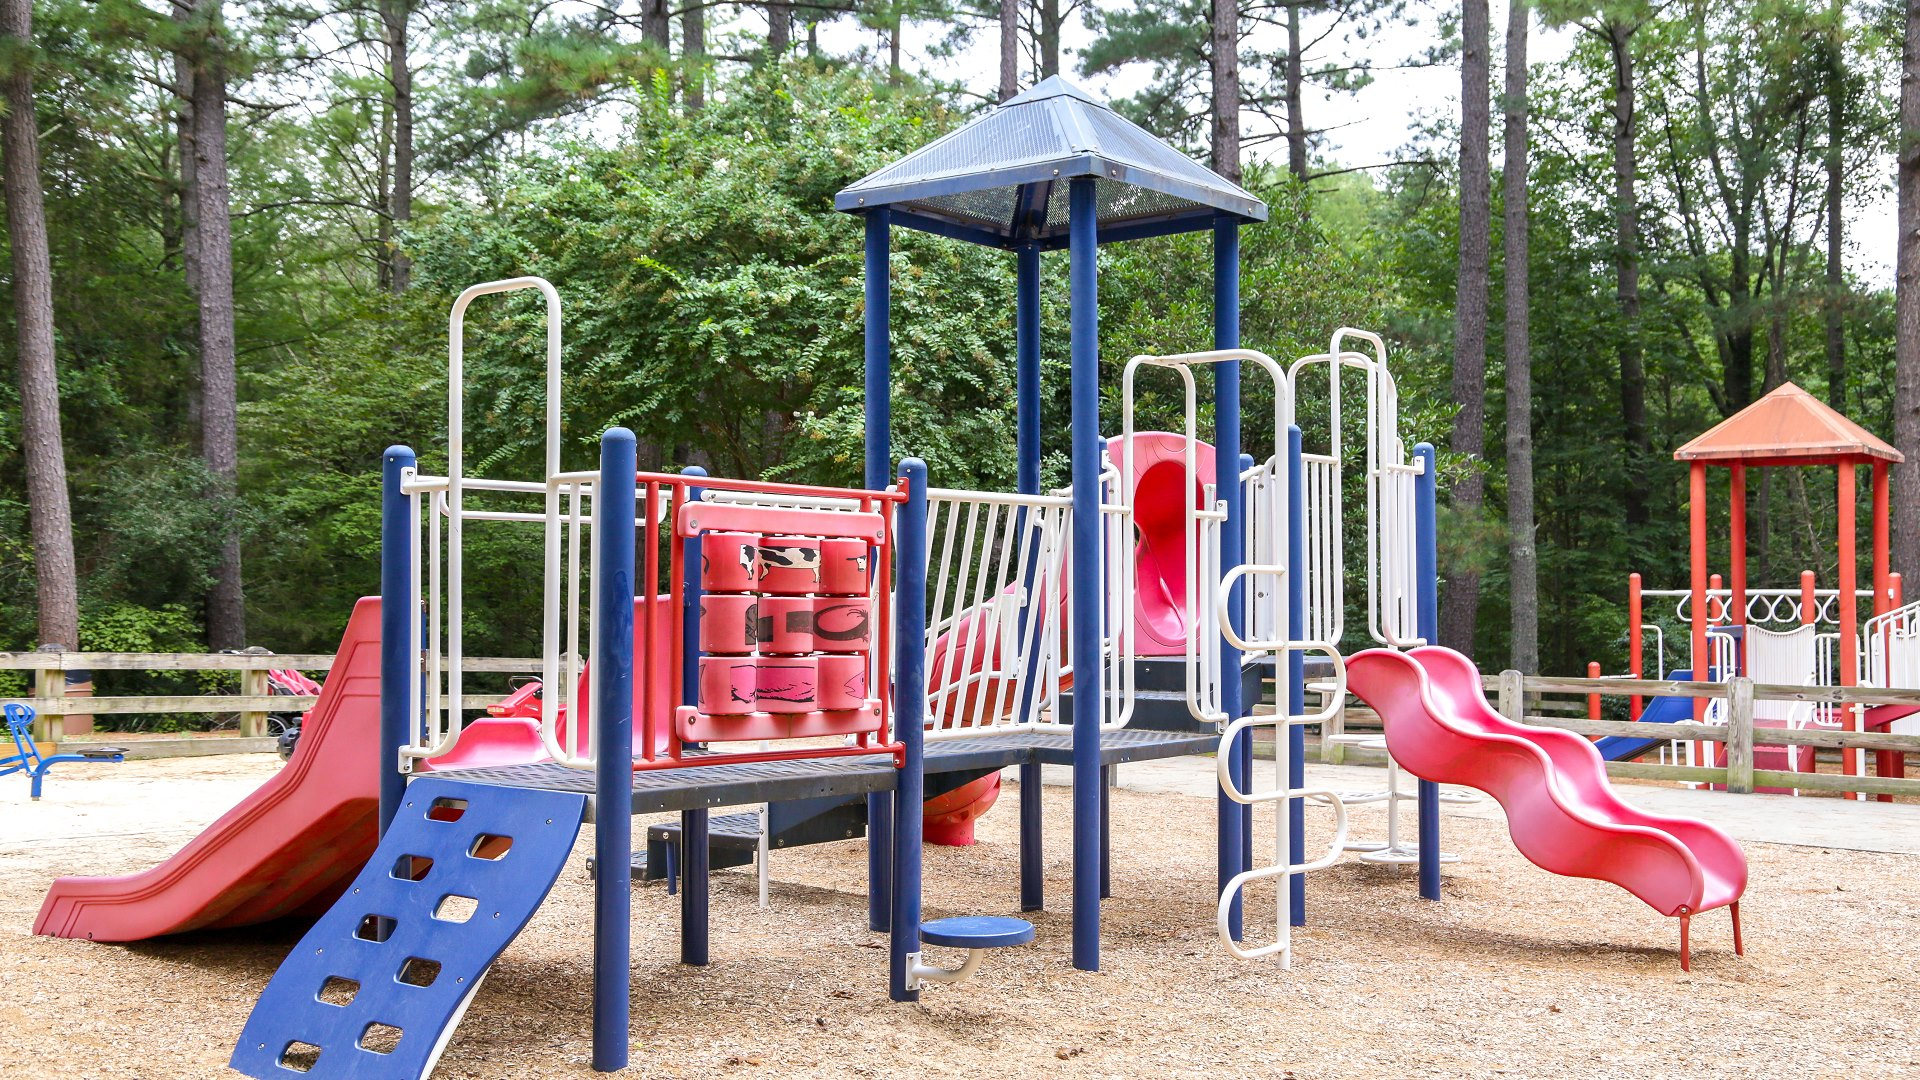 One of two playgrounds designed for younger kids with slides and climbing surface